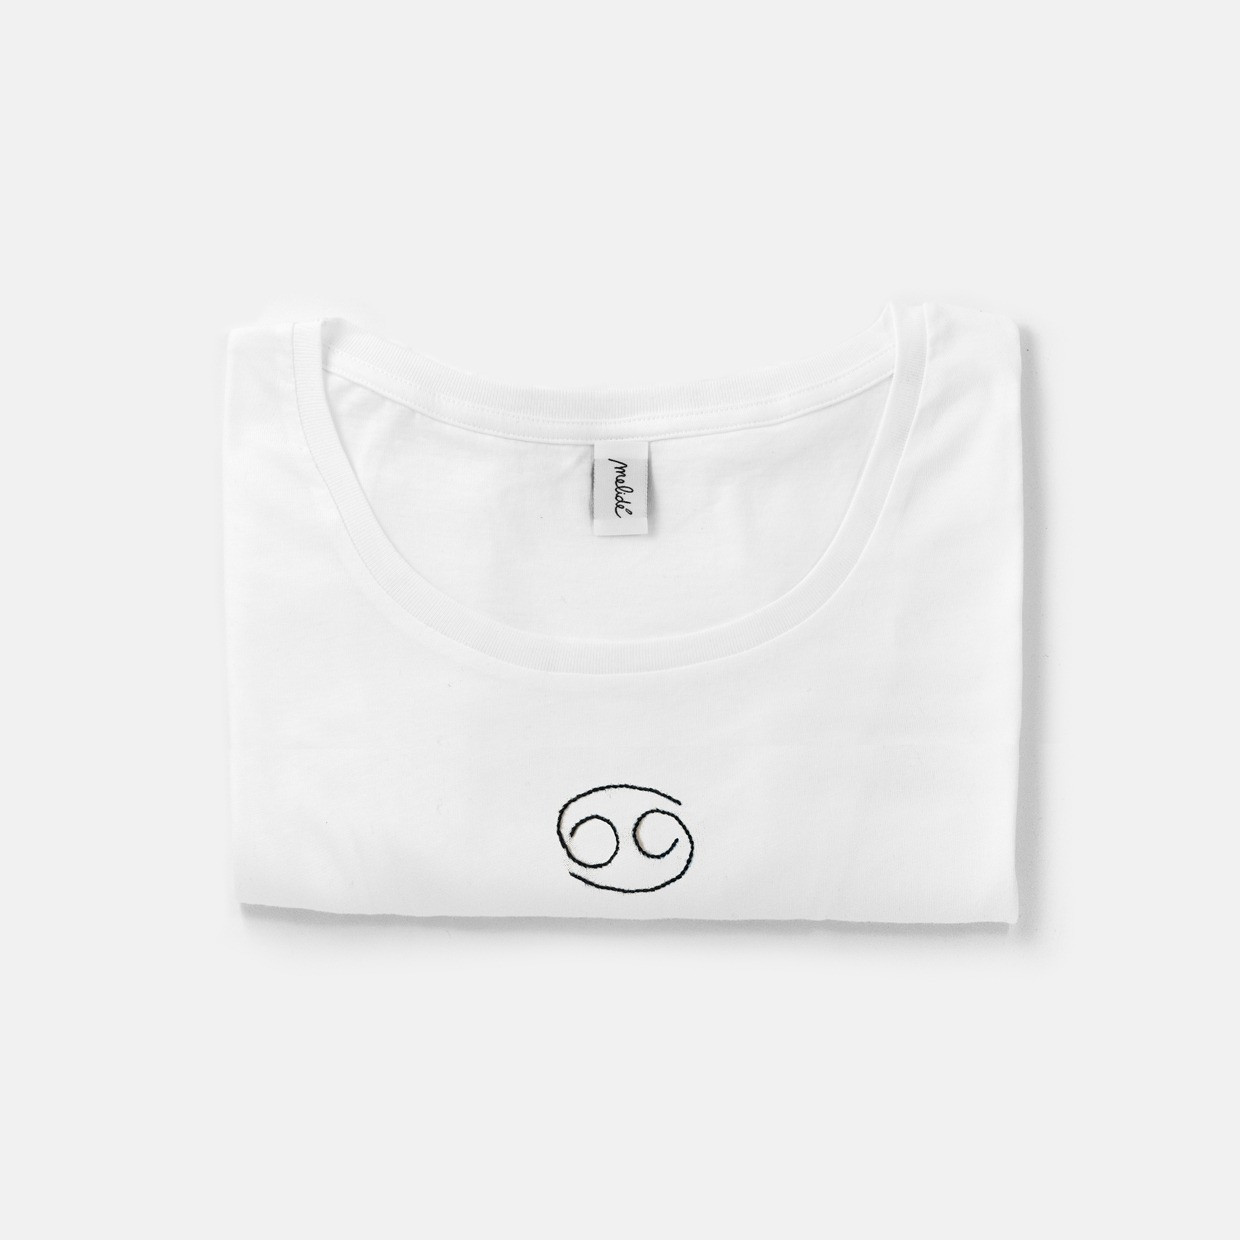 The Wide Neck Cancro Tee